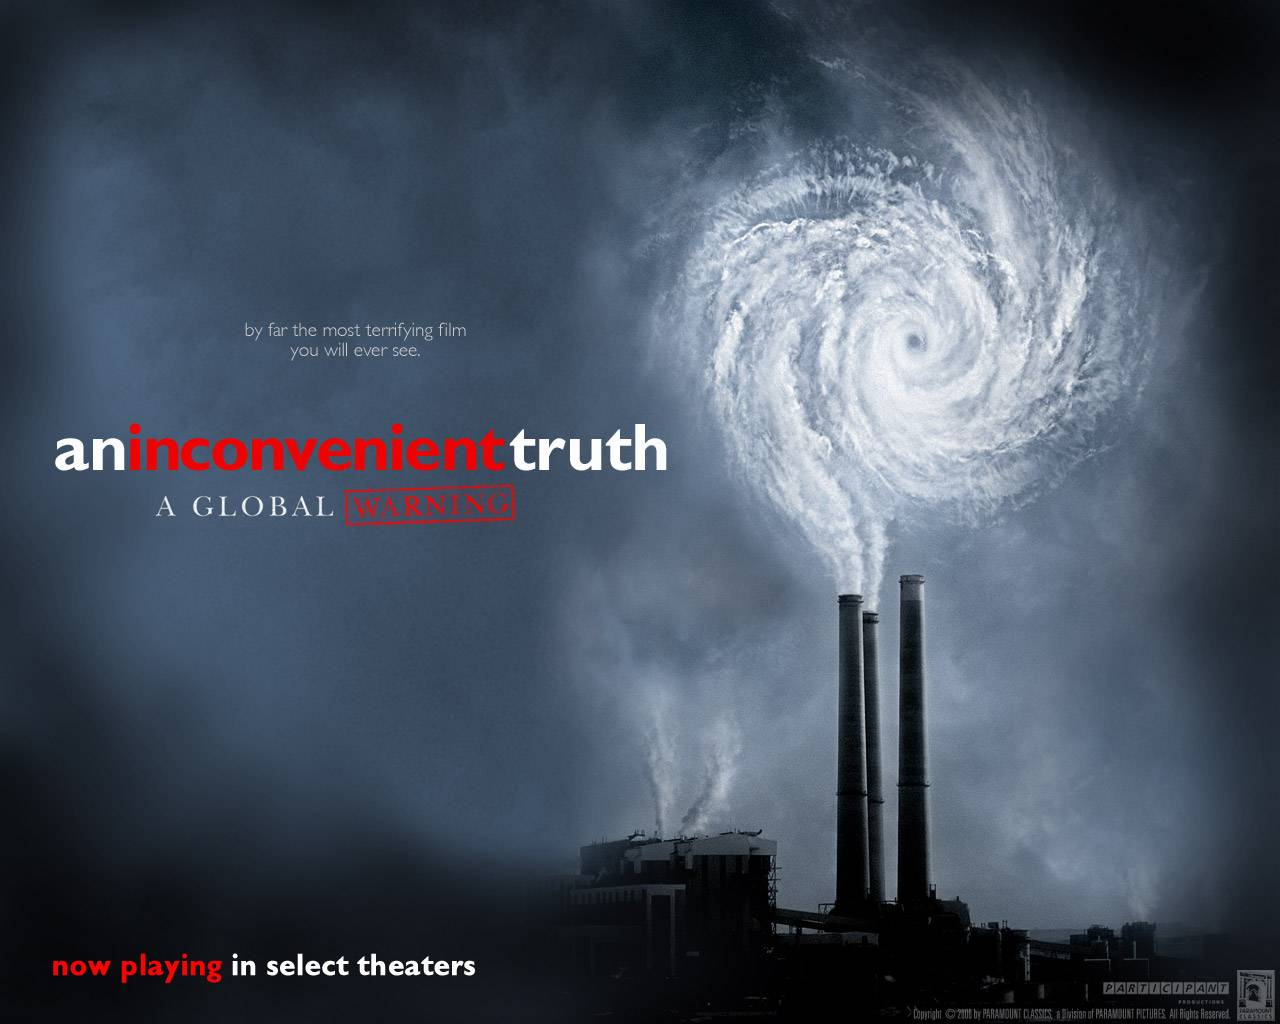 http://www.rogerwendell.com/images/climatechange/an_inconvenient_truth_by_al_gore.jpg